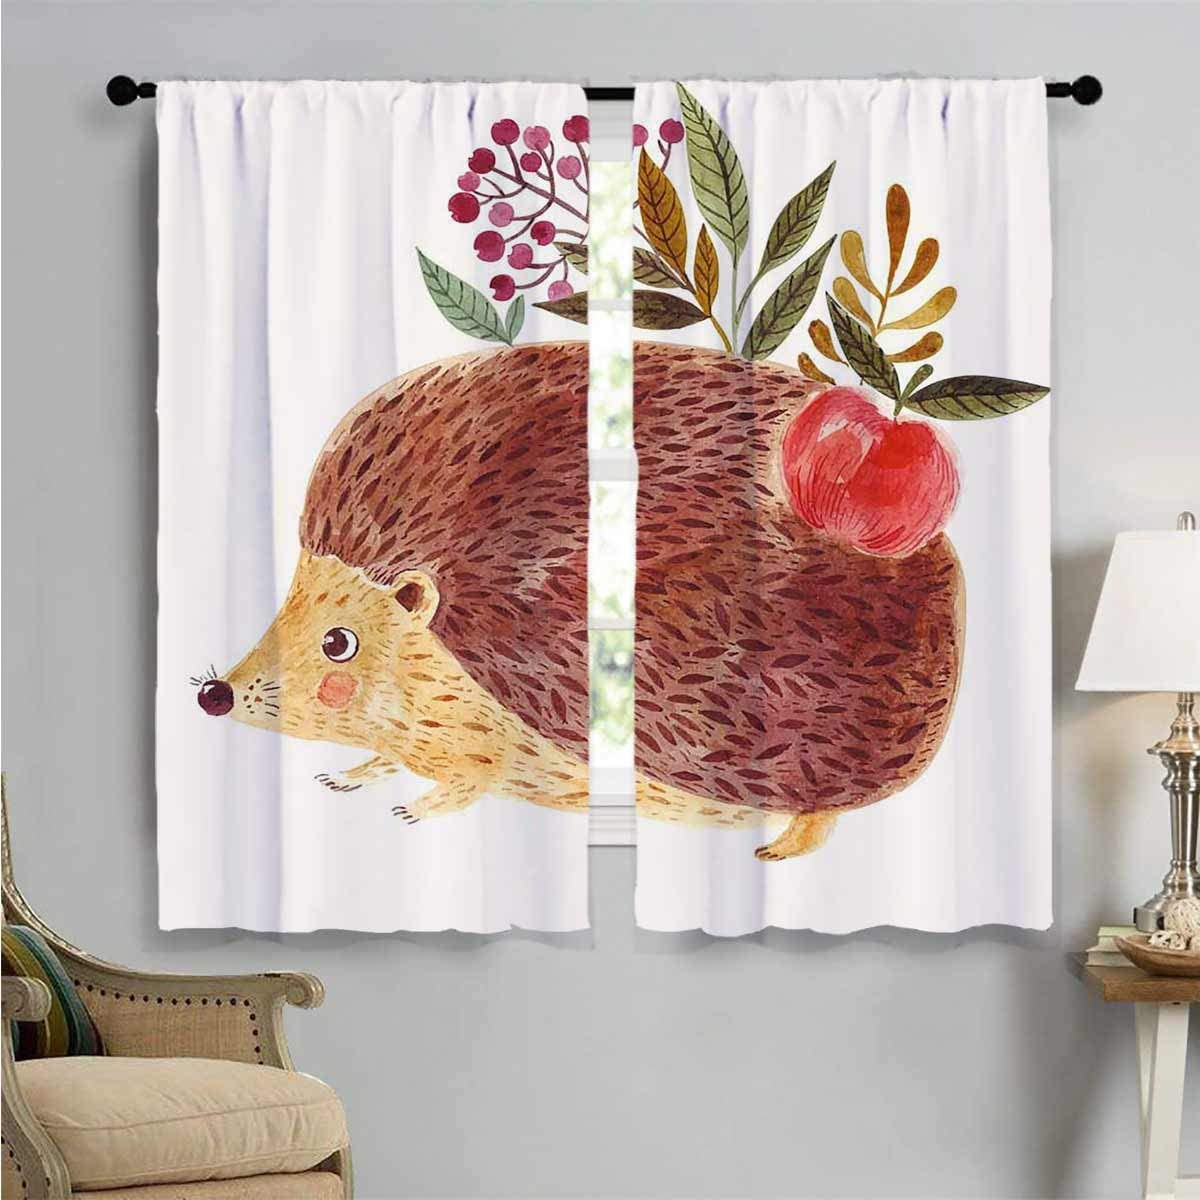 Blackout Window Curtain Hedgehog by Ranking TOP13 Watercolor Decor Beauty products Curtains